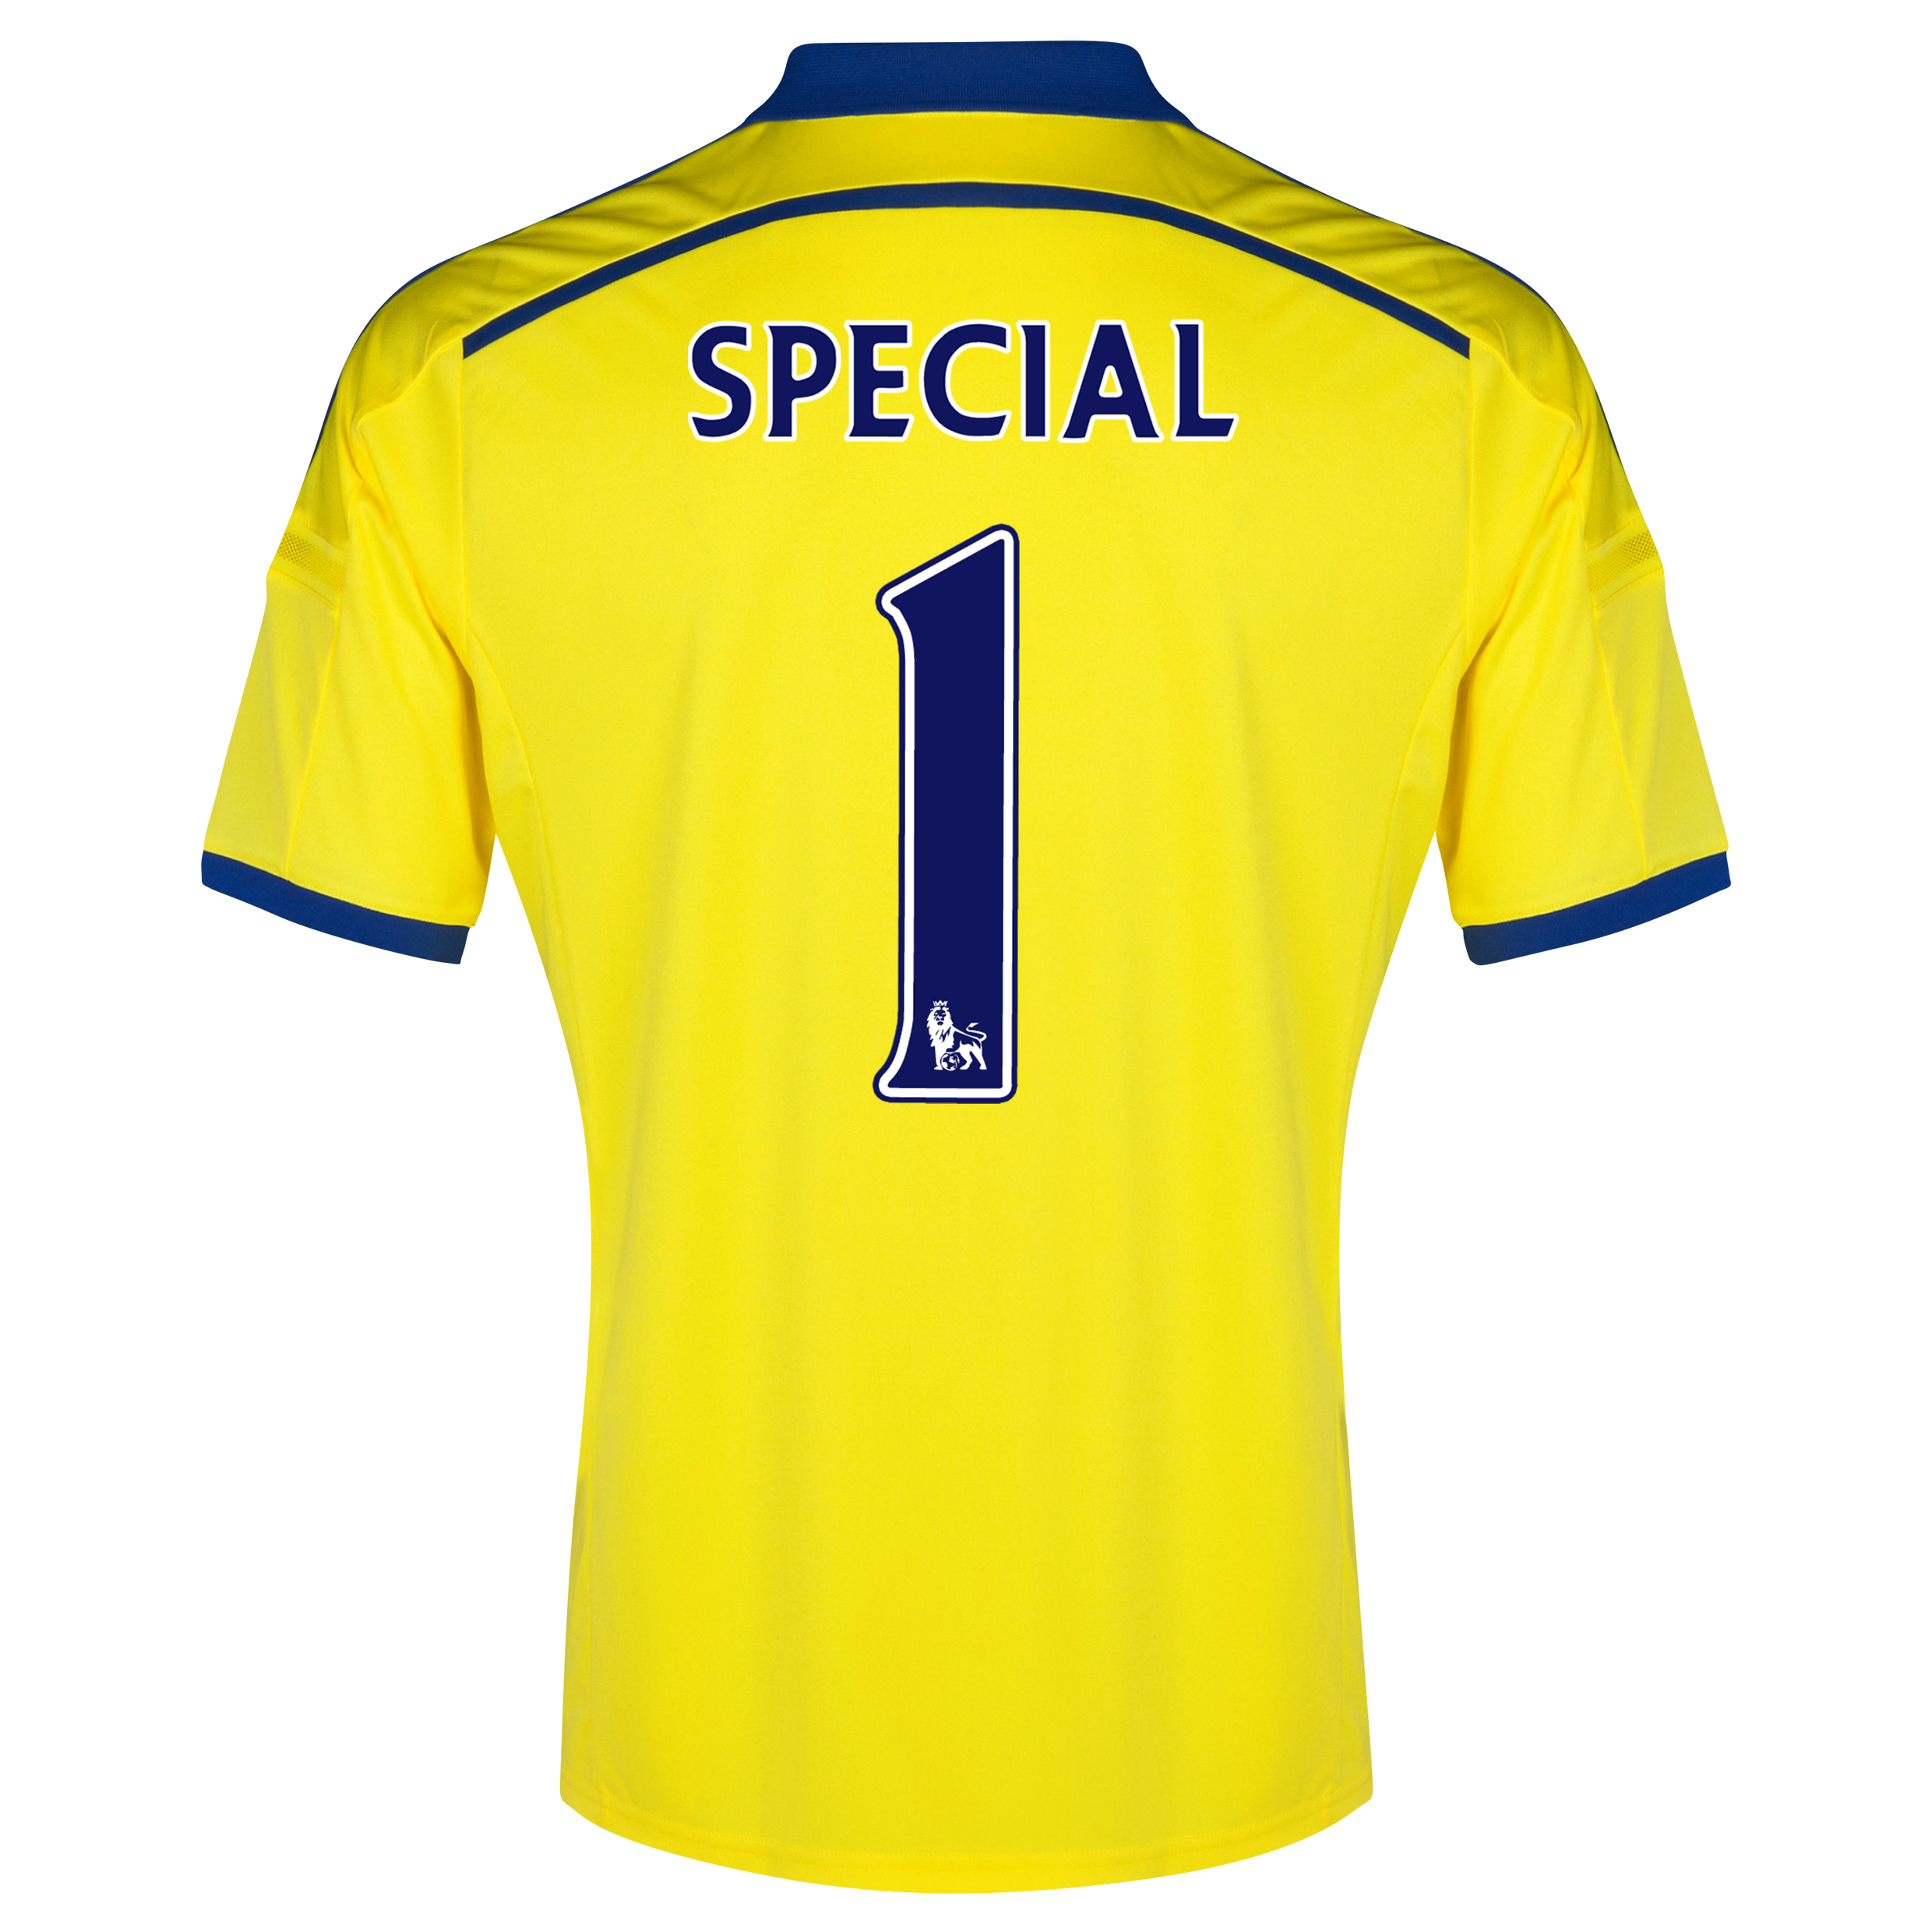 Chelsea Away Shirt 2014/15 Yellow with Special 1 printing